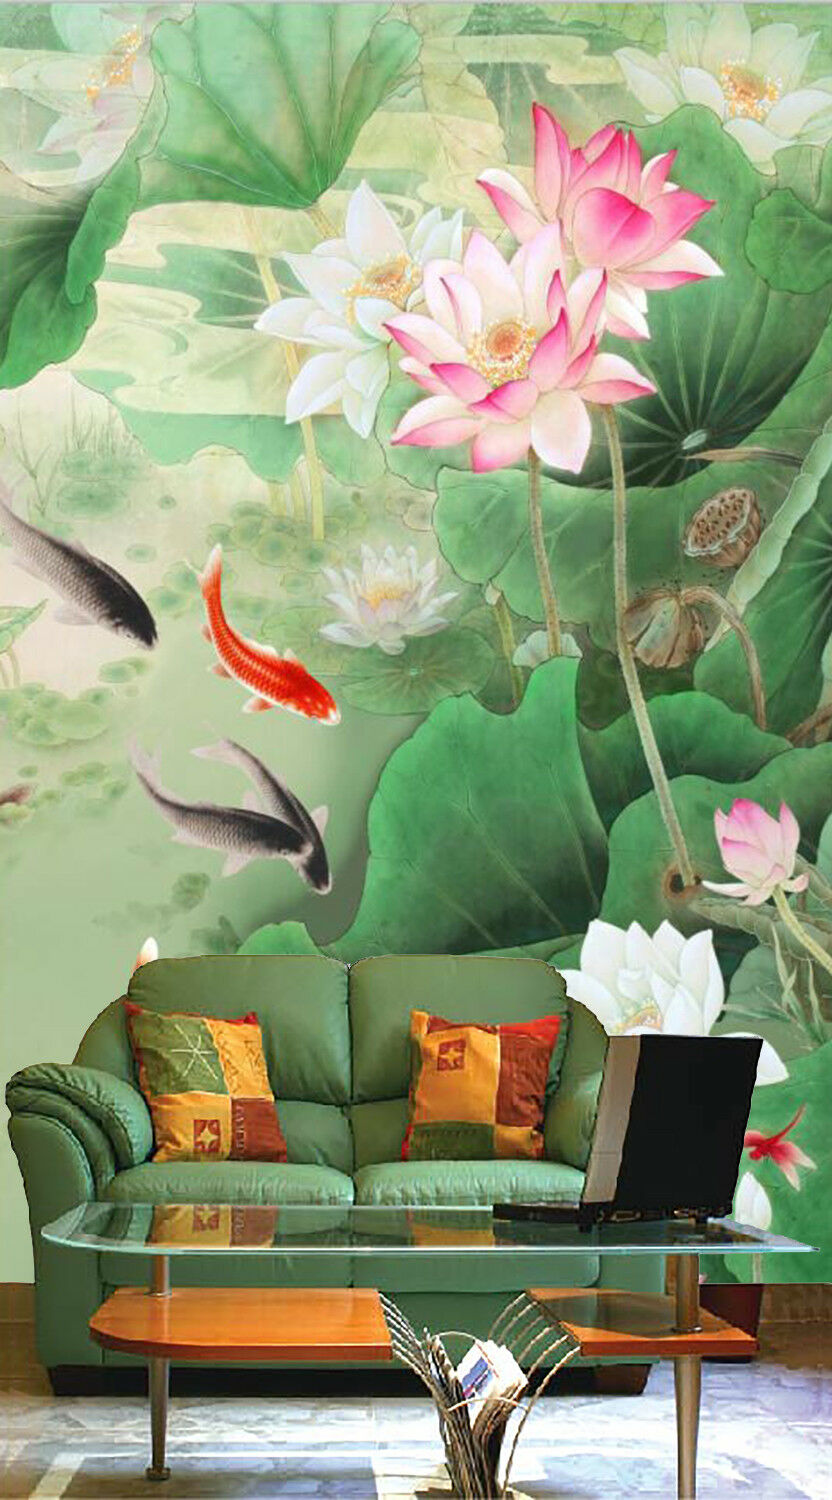 3D Lotu Fish 457 Wallpaper Murals Wall Print Wall Mural AJ WALLPAPER UK Summer